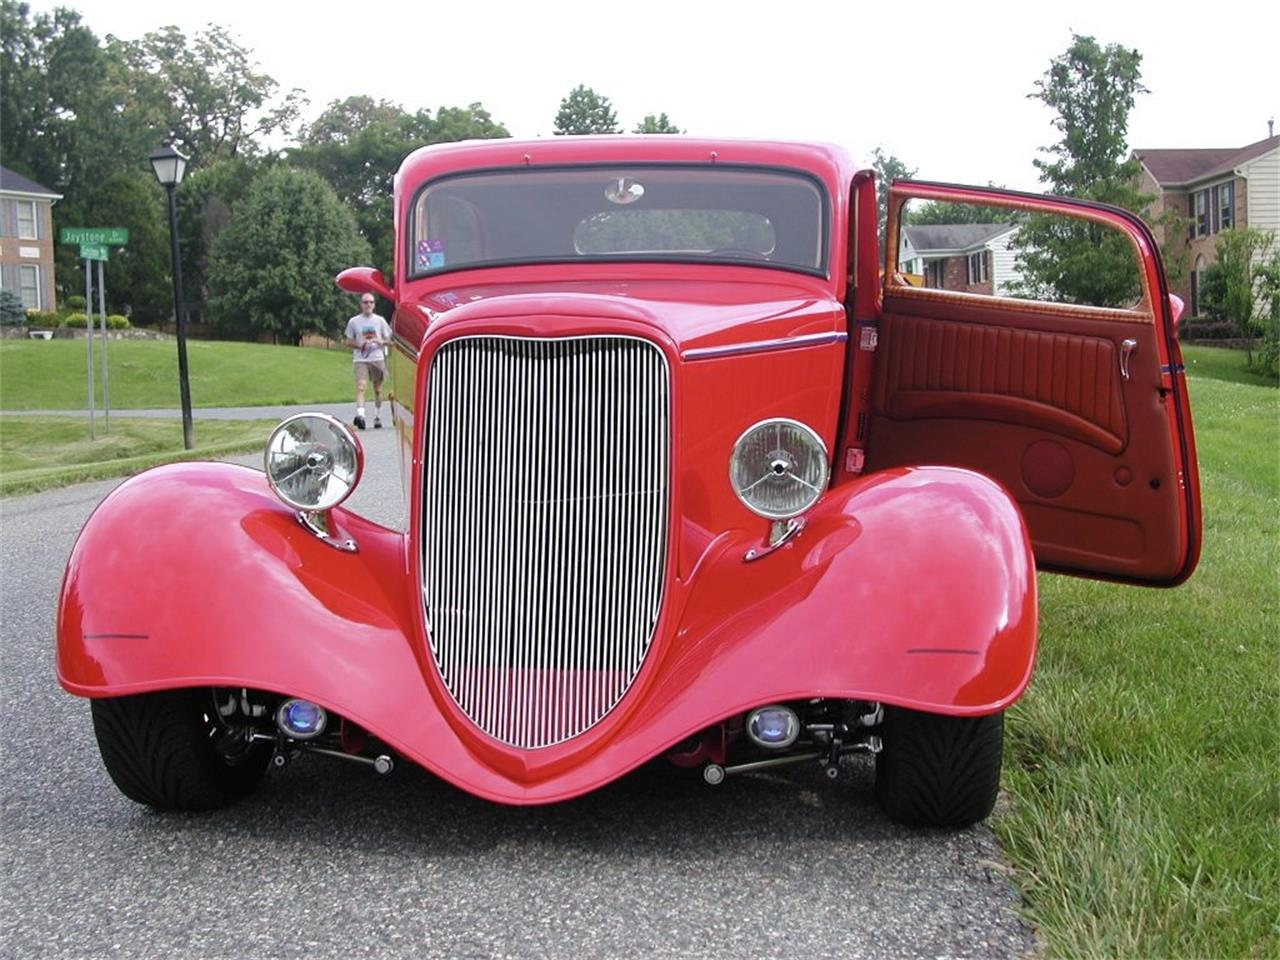 Large Picture of Classic '33 Ford Tudor located in Hilton Head Island South Carolina - $84,000.00 Offered by a Private Seller - PKOZ